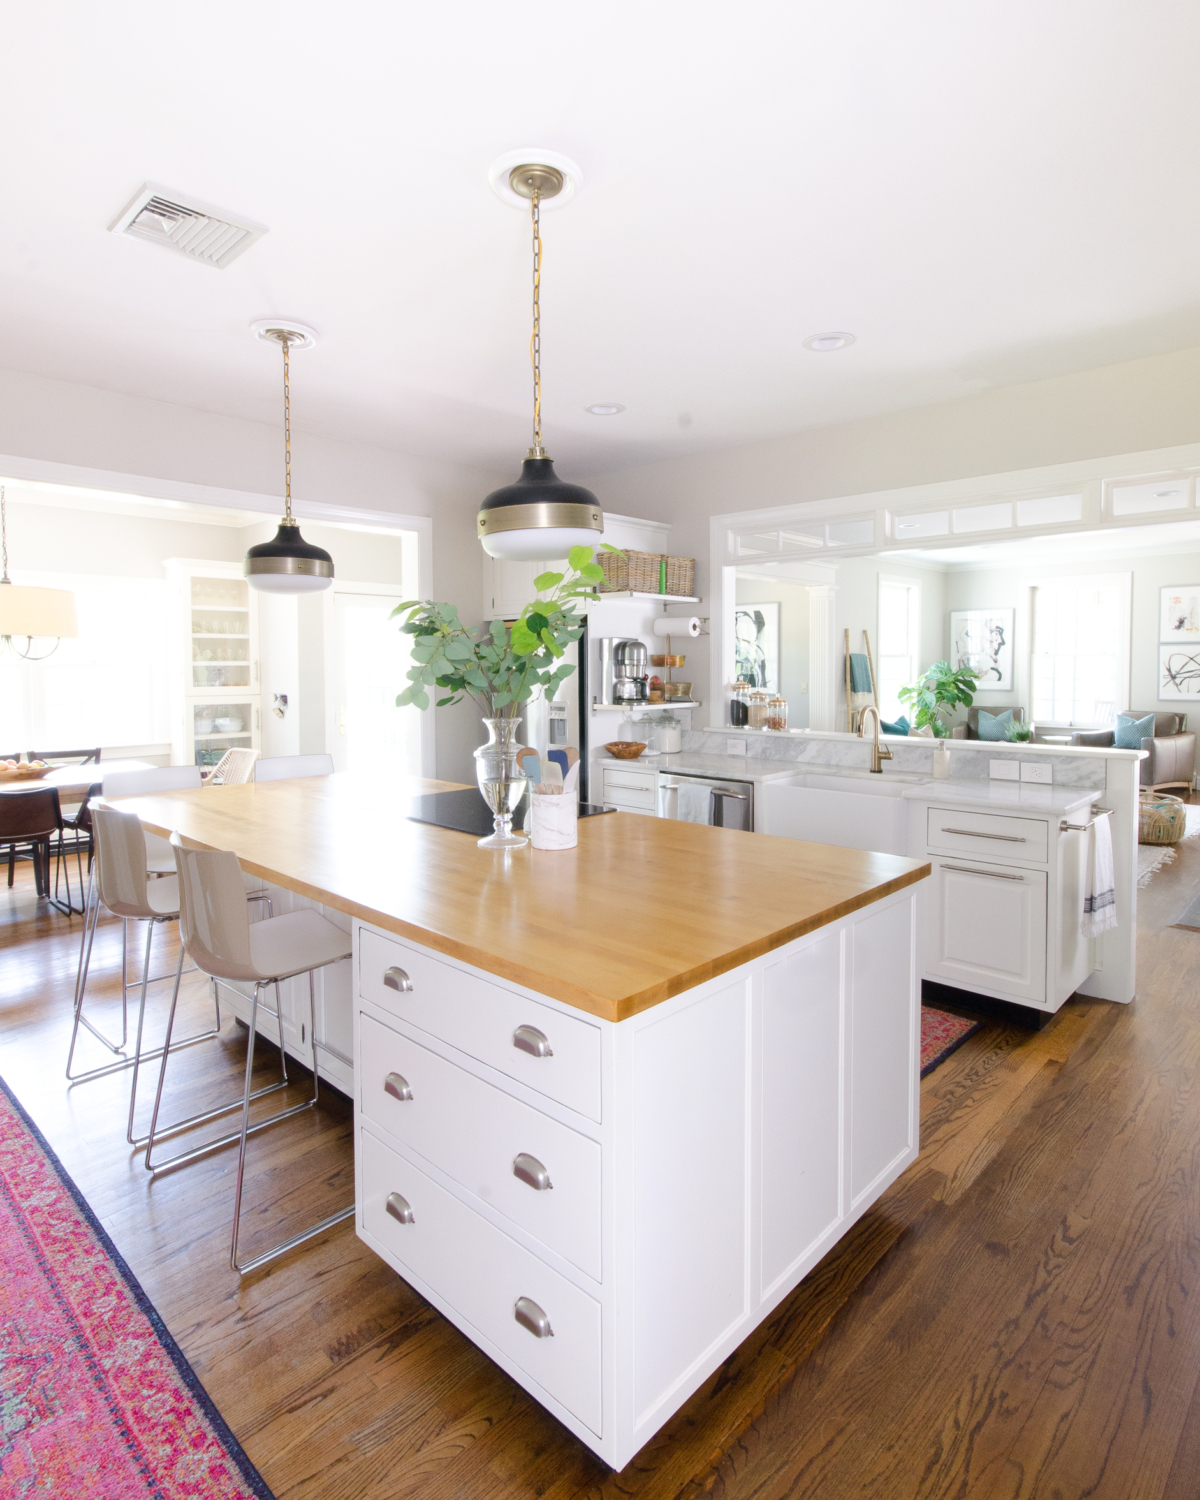 Classic white kitchen with butcher block counter and pendants similar to the Hicks pendant but way more affordable! Transom windows divide the kitchen and family room. Perimeter counter is quartzite that looks like marble!